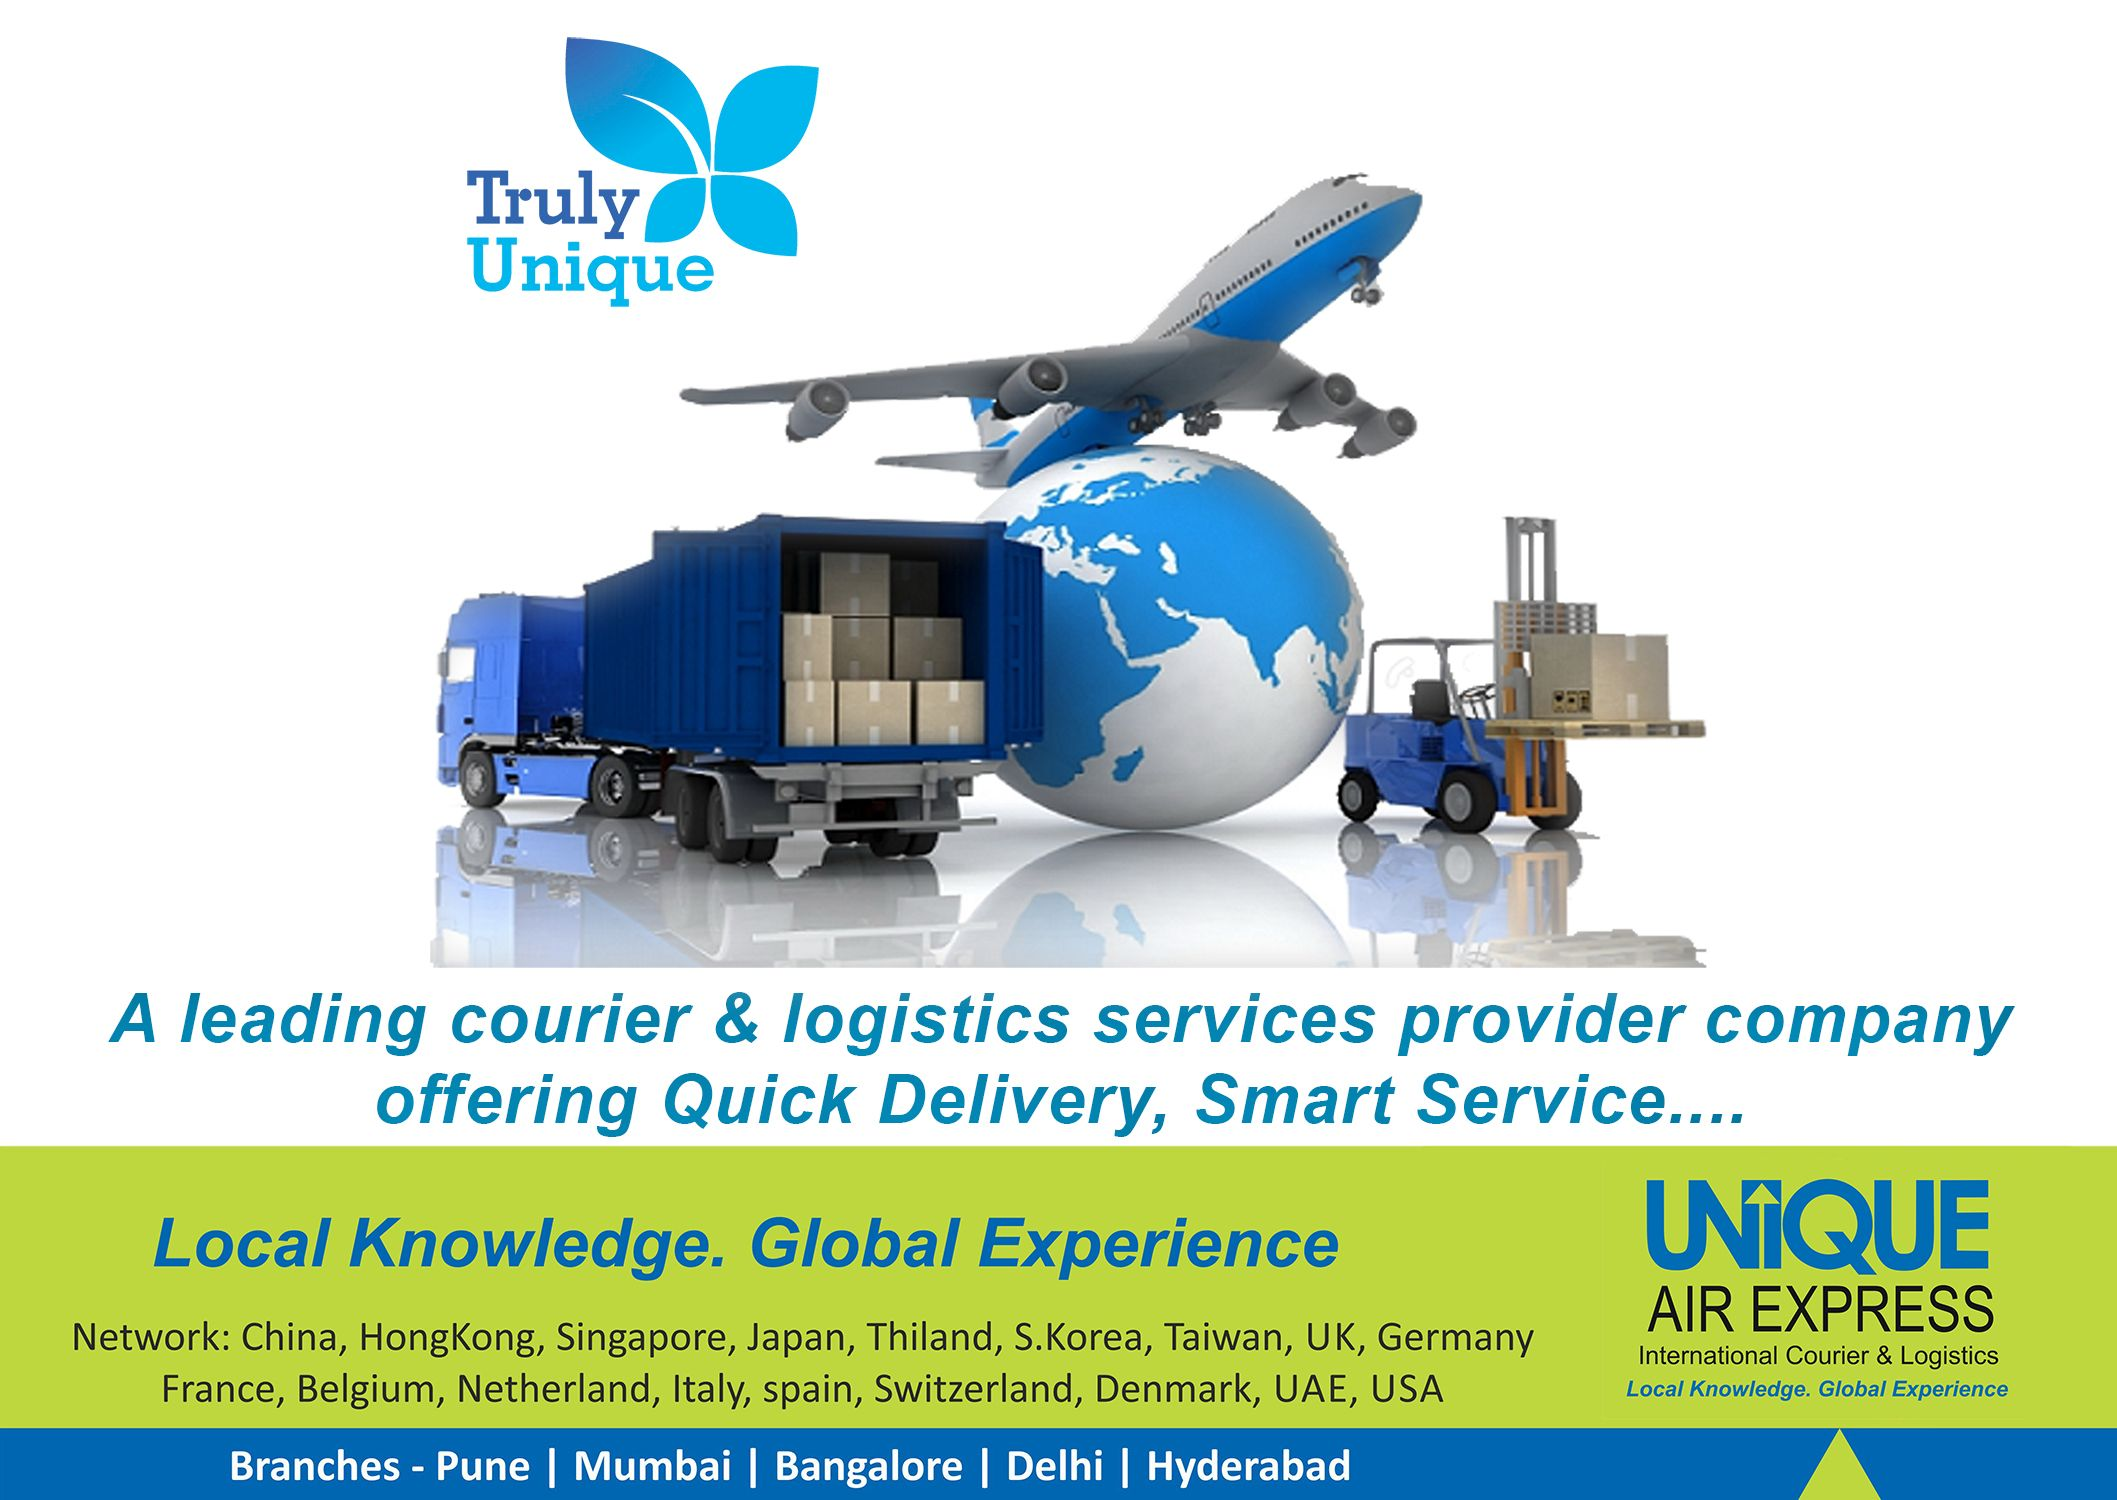 We are the #Company Transforming #international #Courier